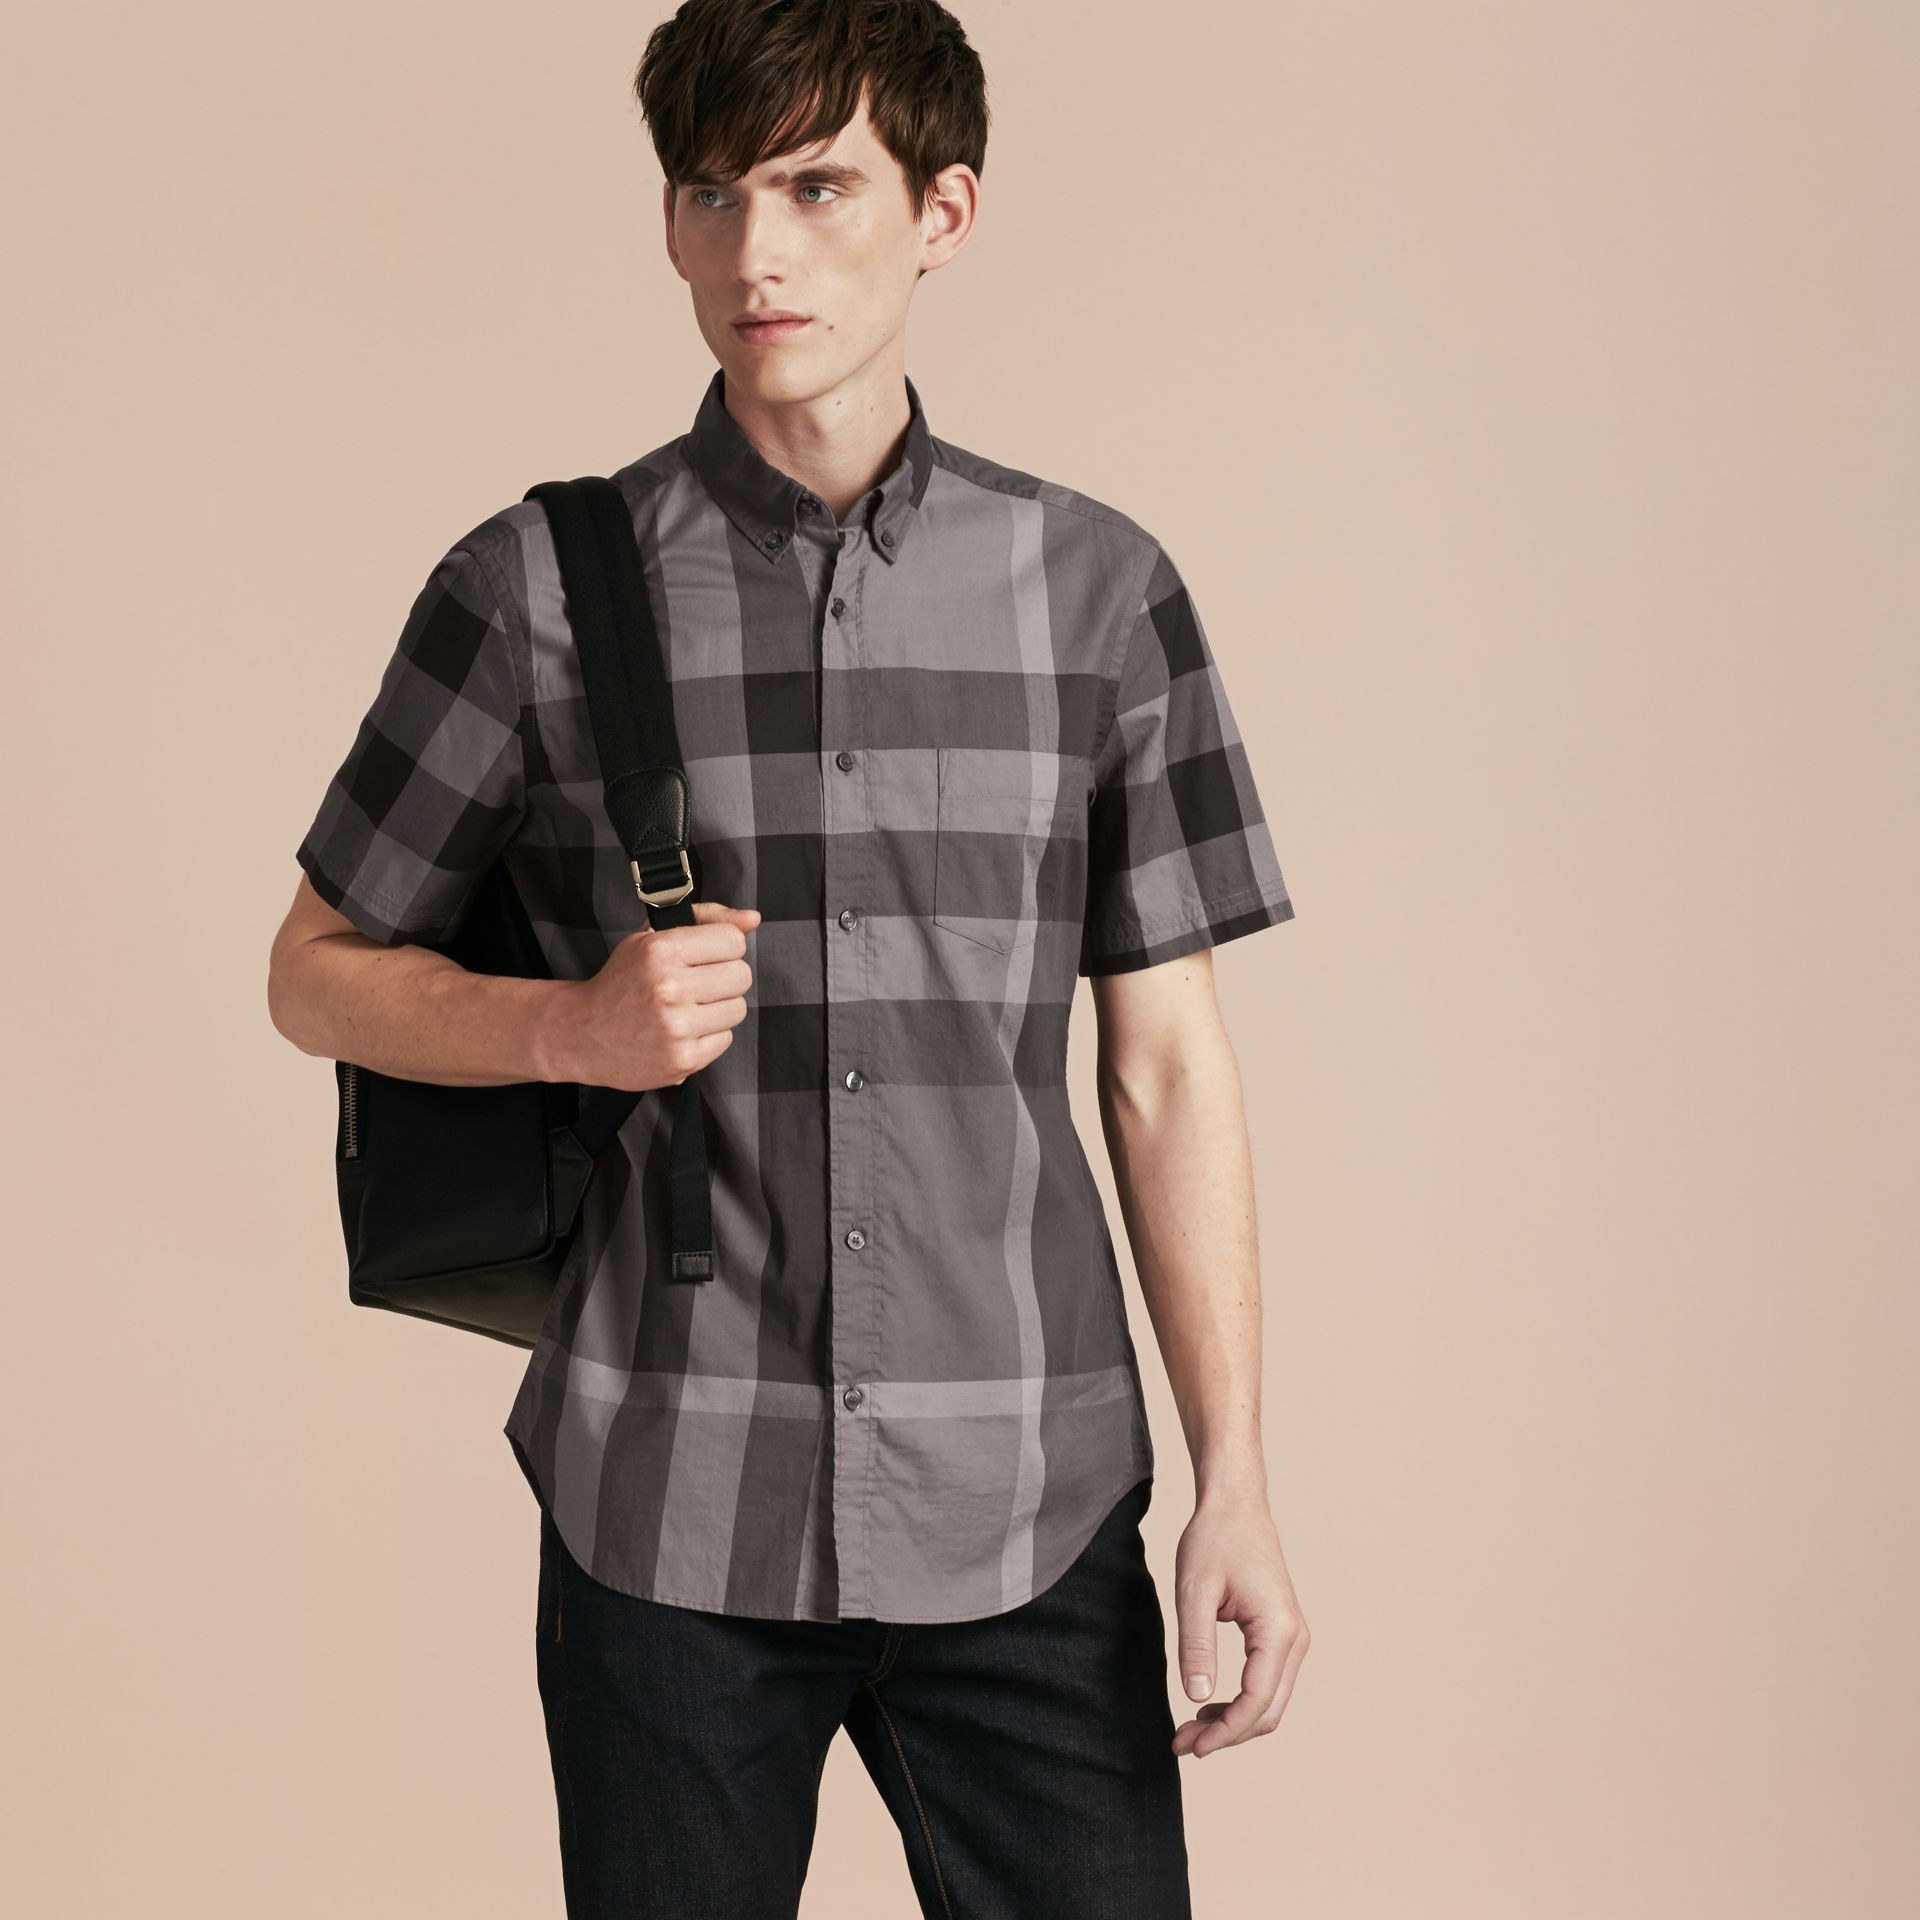 Charcoal Short-sleeved Check Cotton Shirt Charcoal - gallery image 6